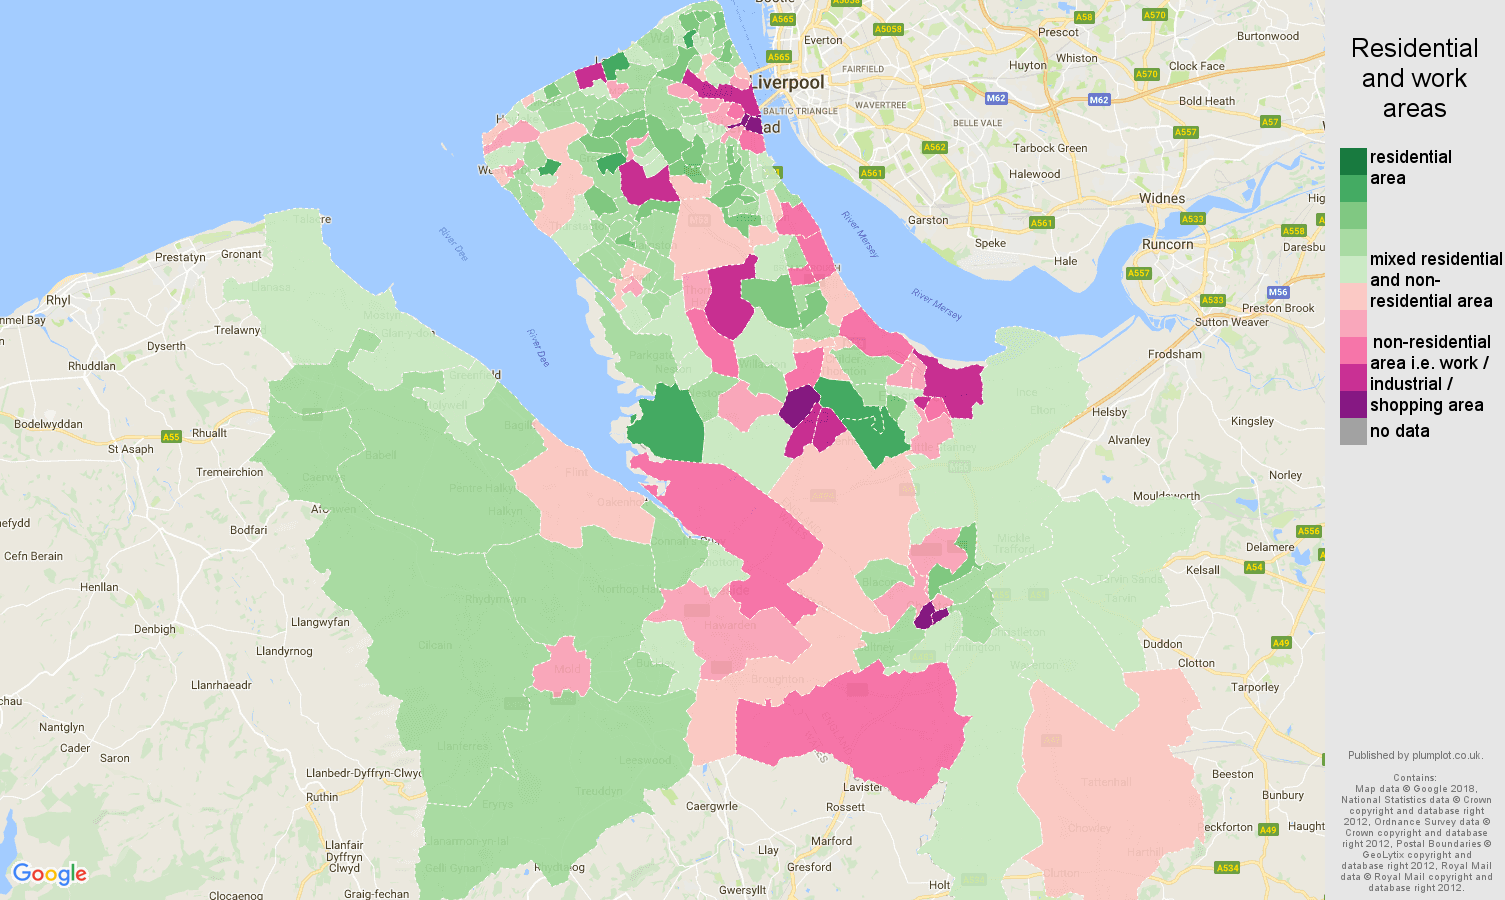 Chester residential areas map